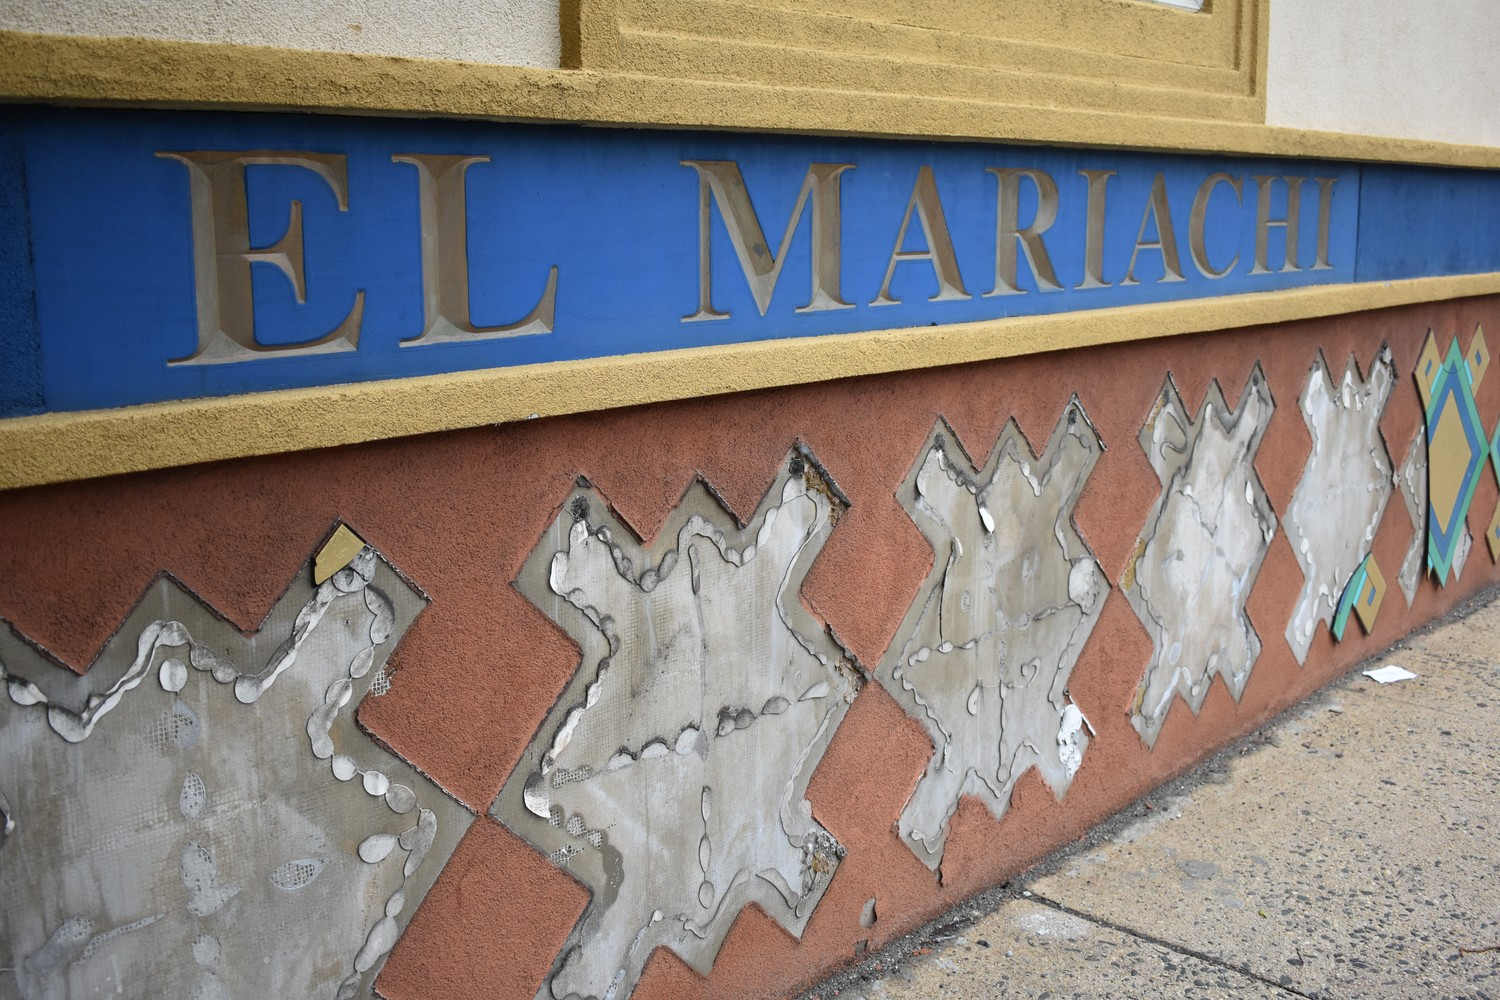 El Mariachi, a Mexican restaurant on Sunrise Highway for 41 years, closed in April.